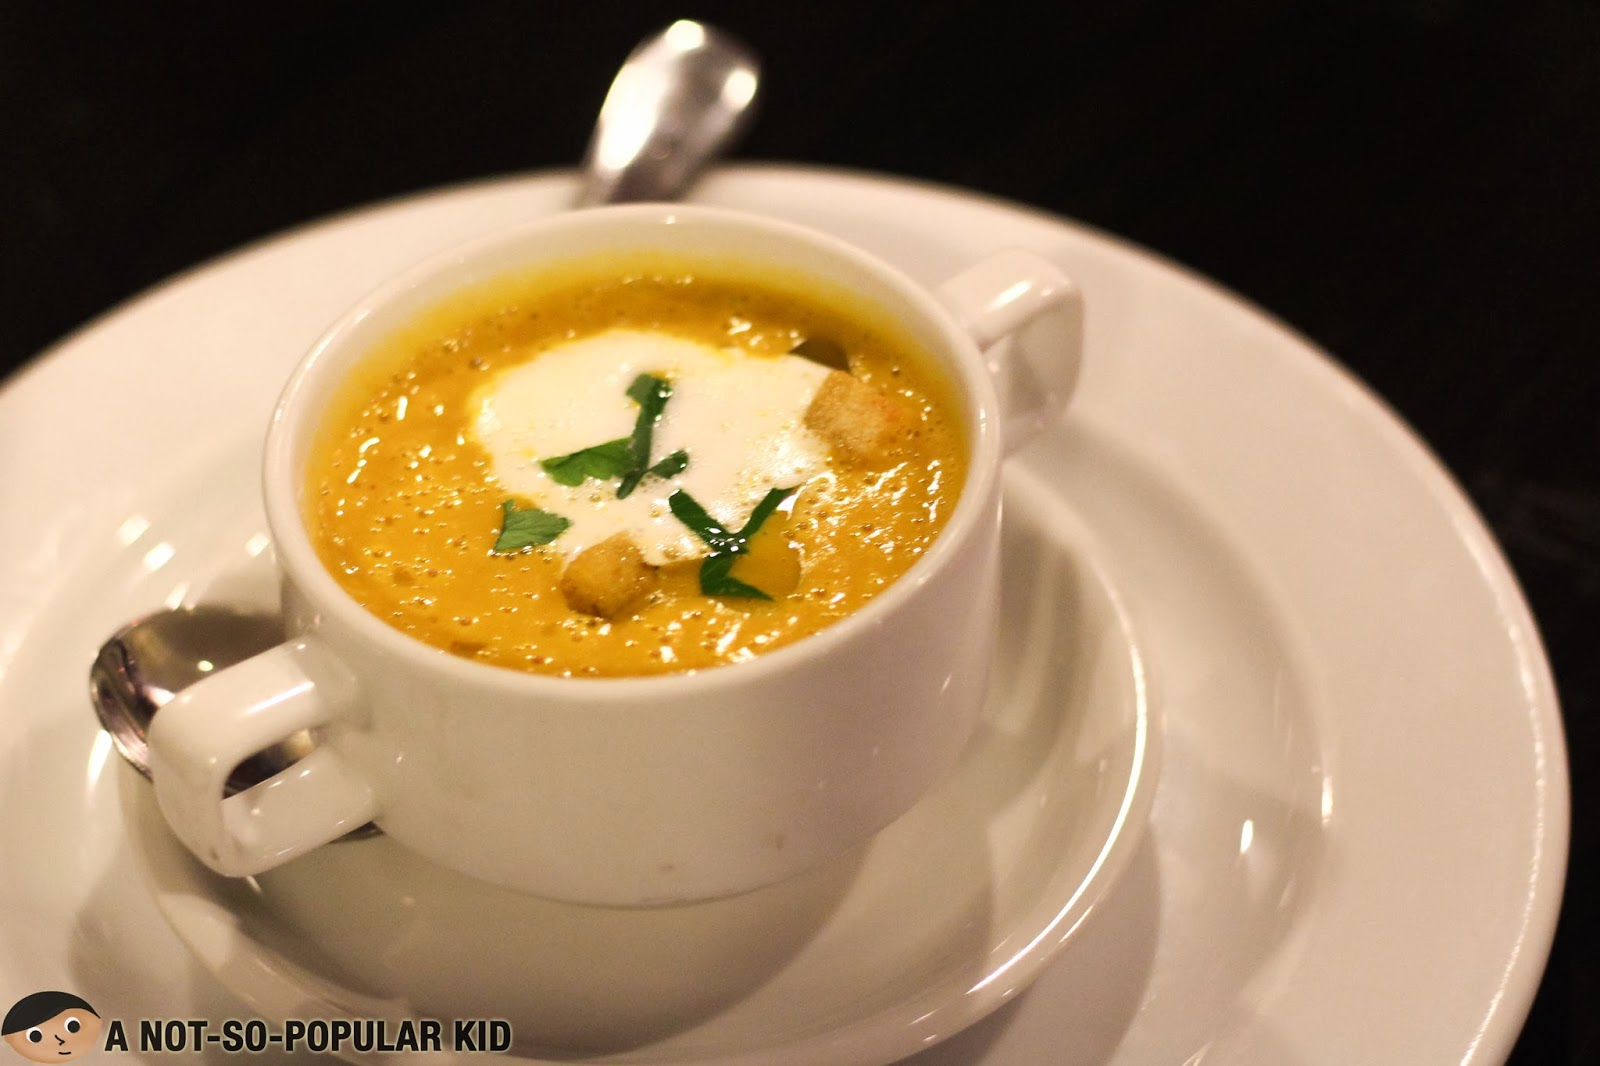 Rich and creamy Pumpkin-Carrot Cream Soup of My Kitchen